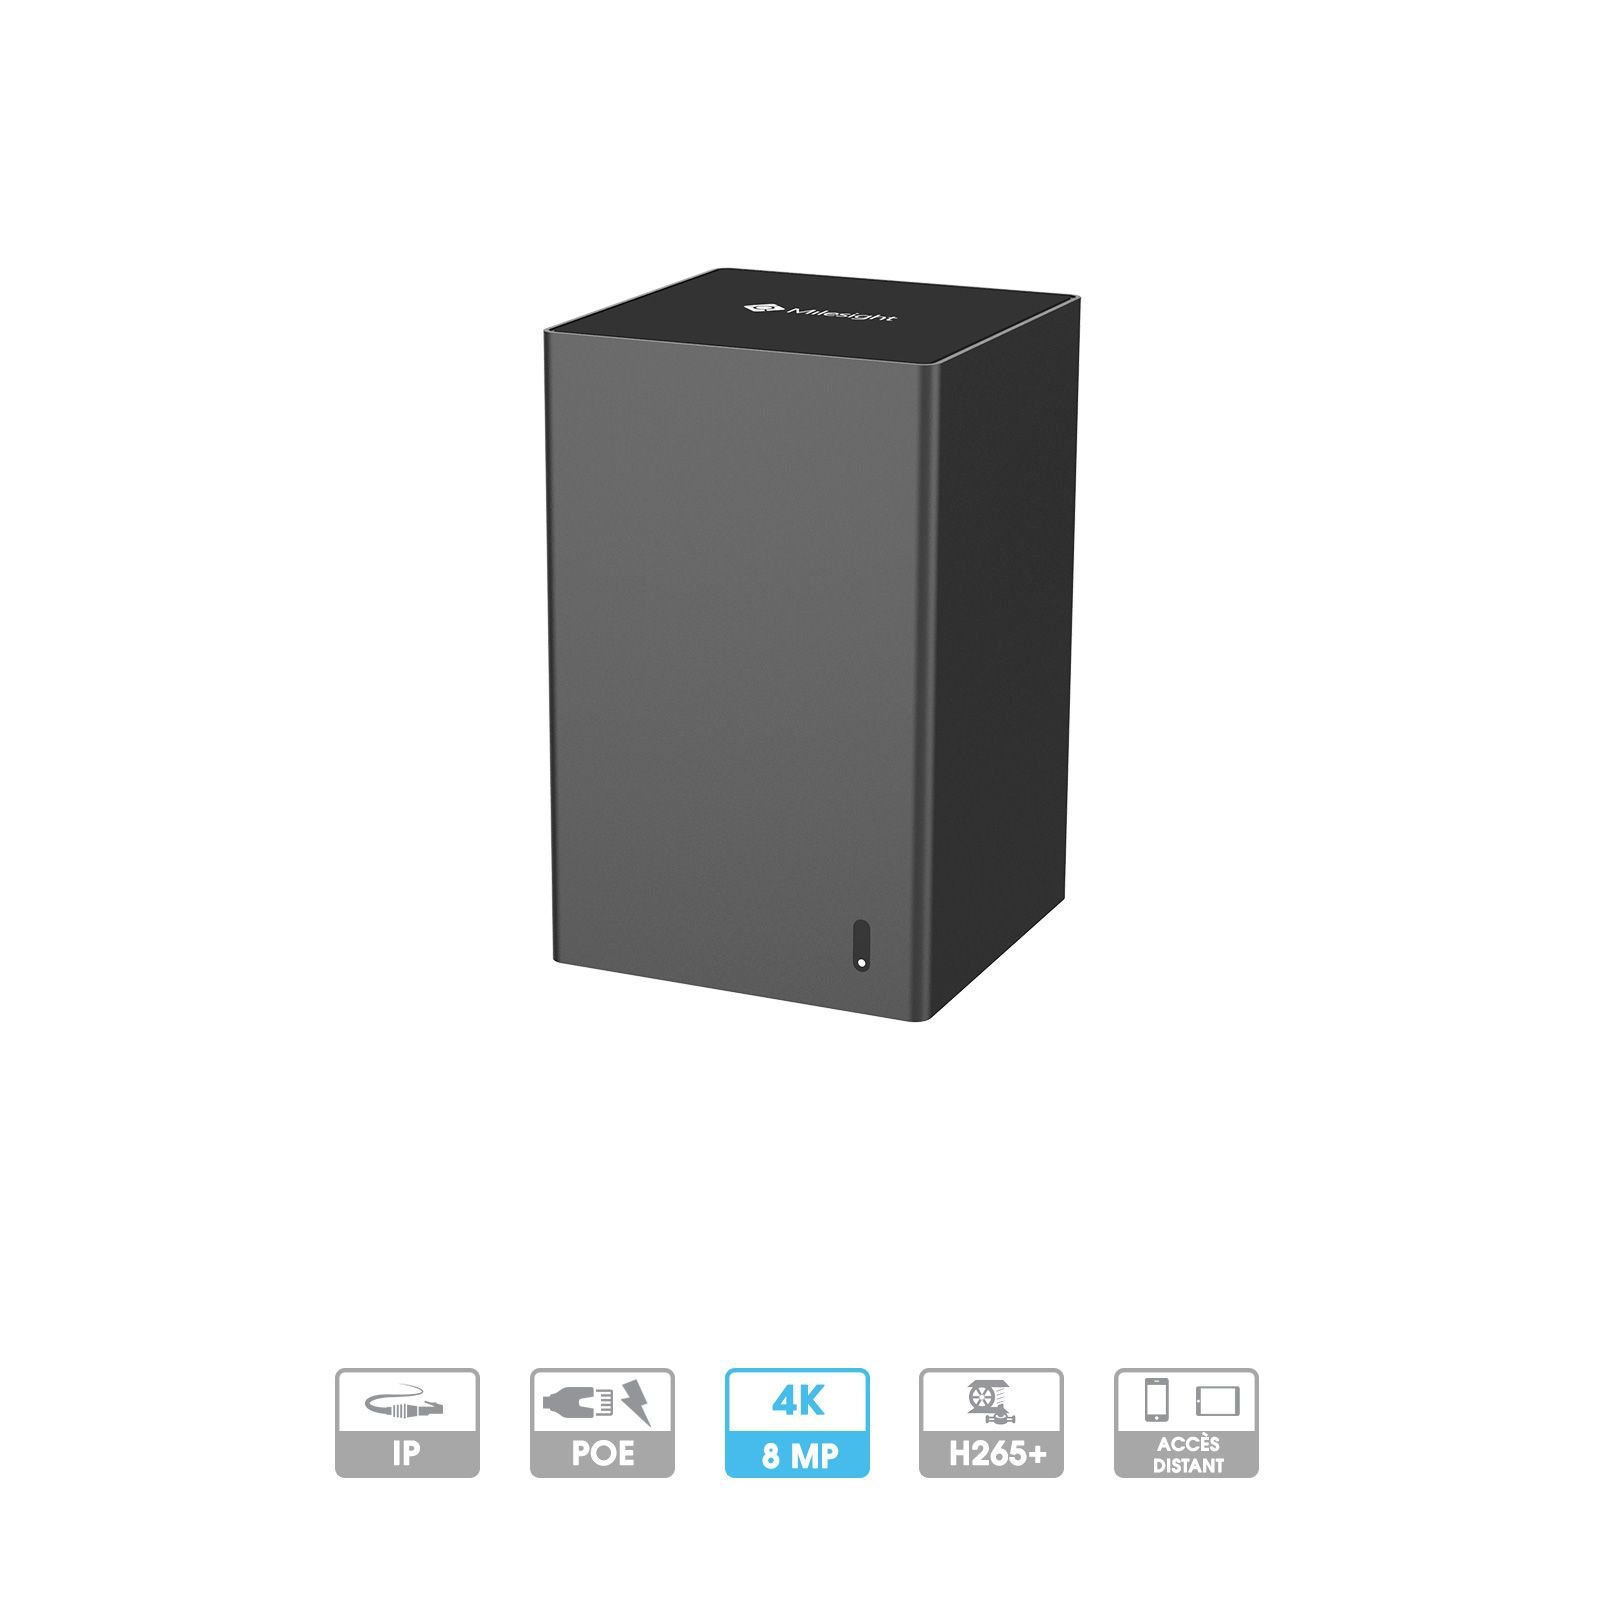 Enregistreur Mini-NVR Milesight | 8 caméras (4 PoE) | IP | PoE | 8 MP maximum | 1 HDD